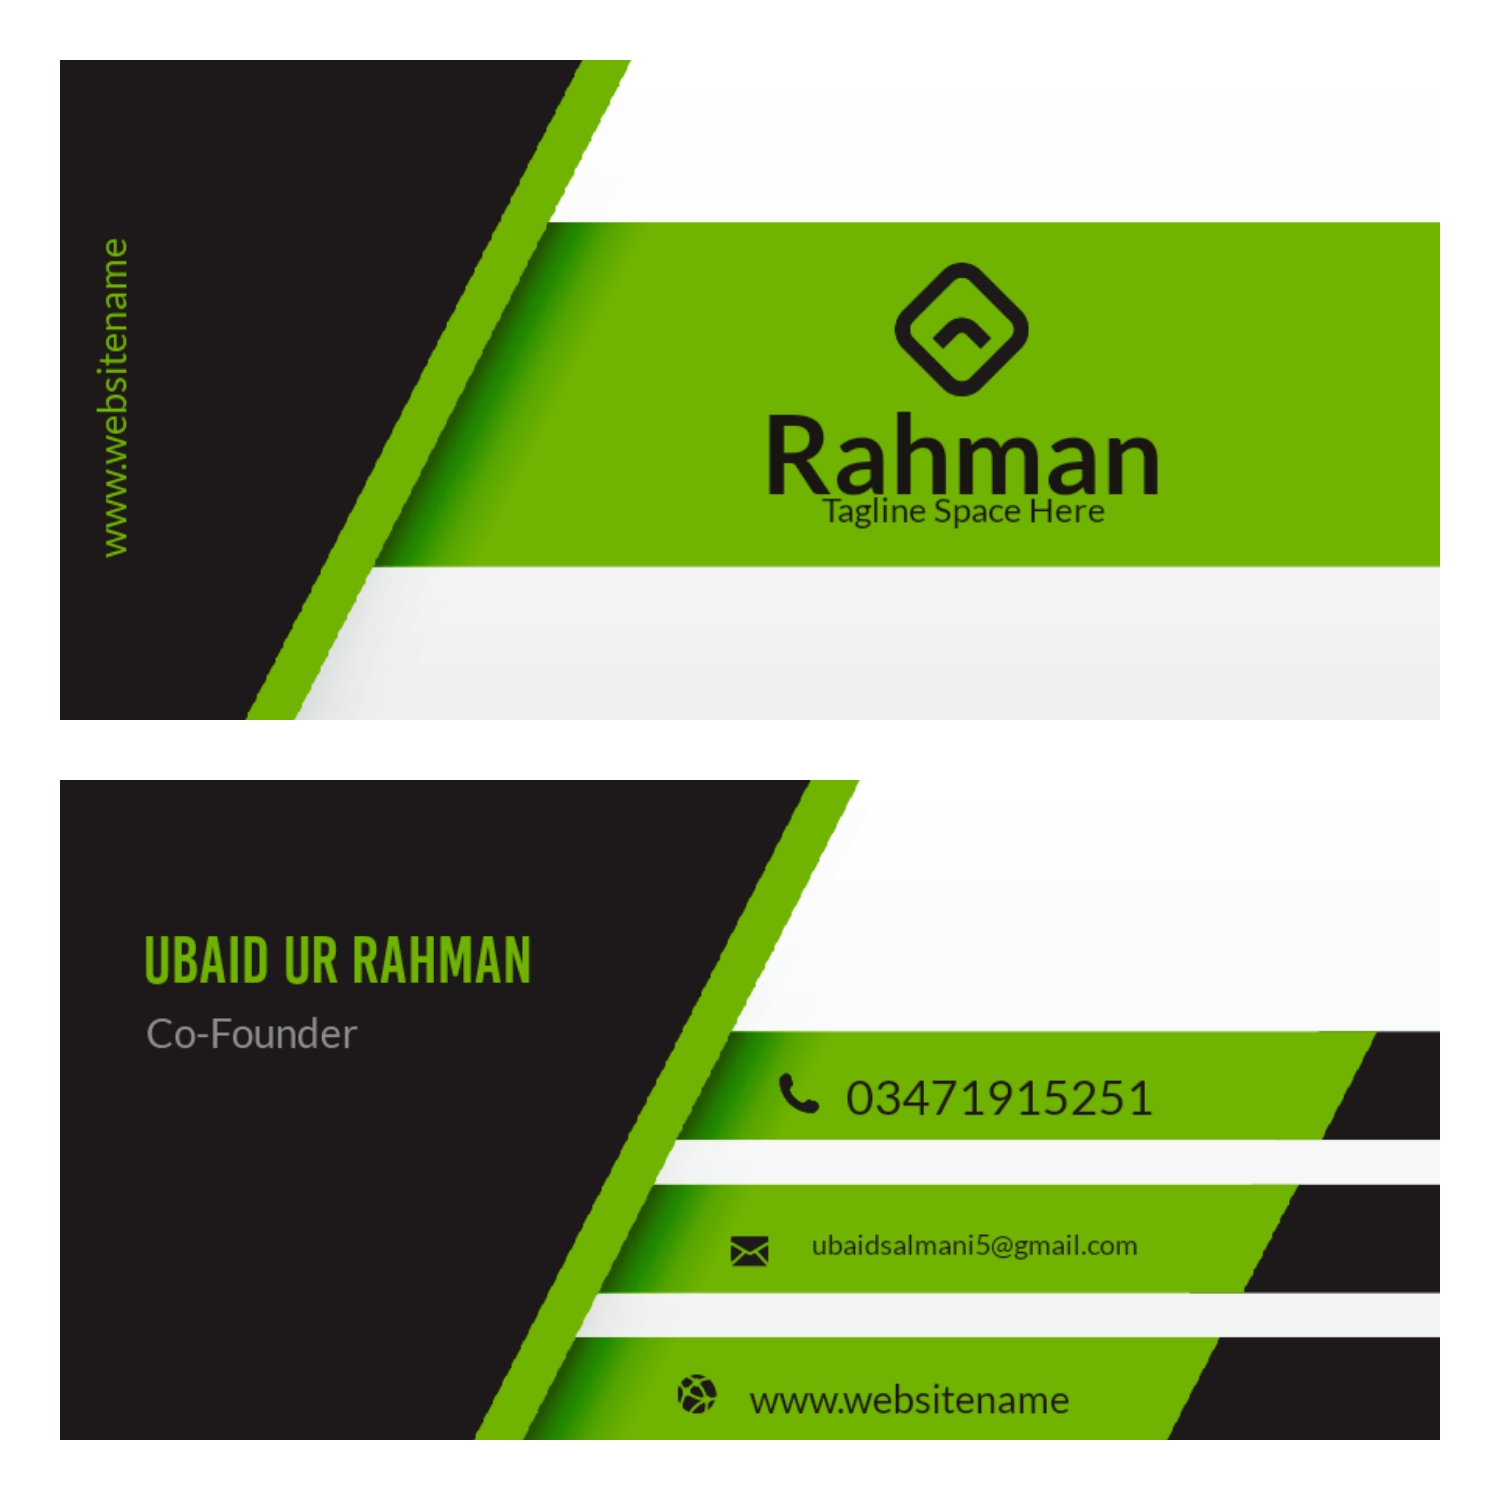 I design all types of business card